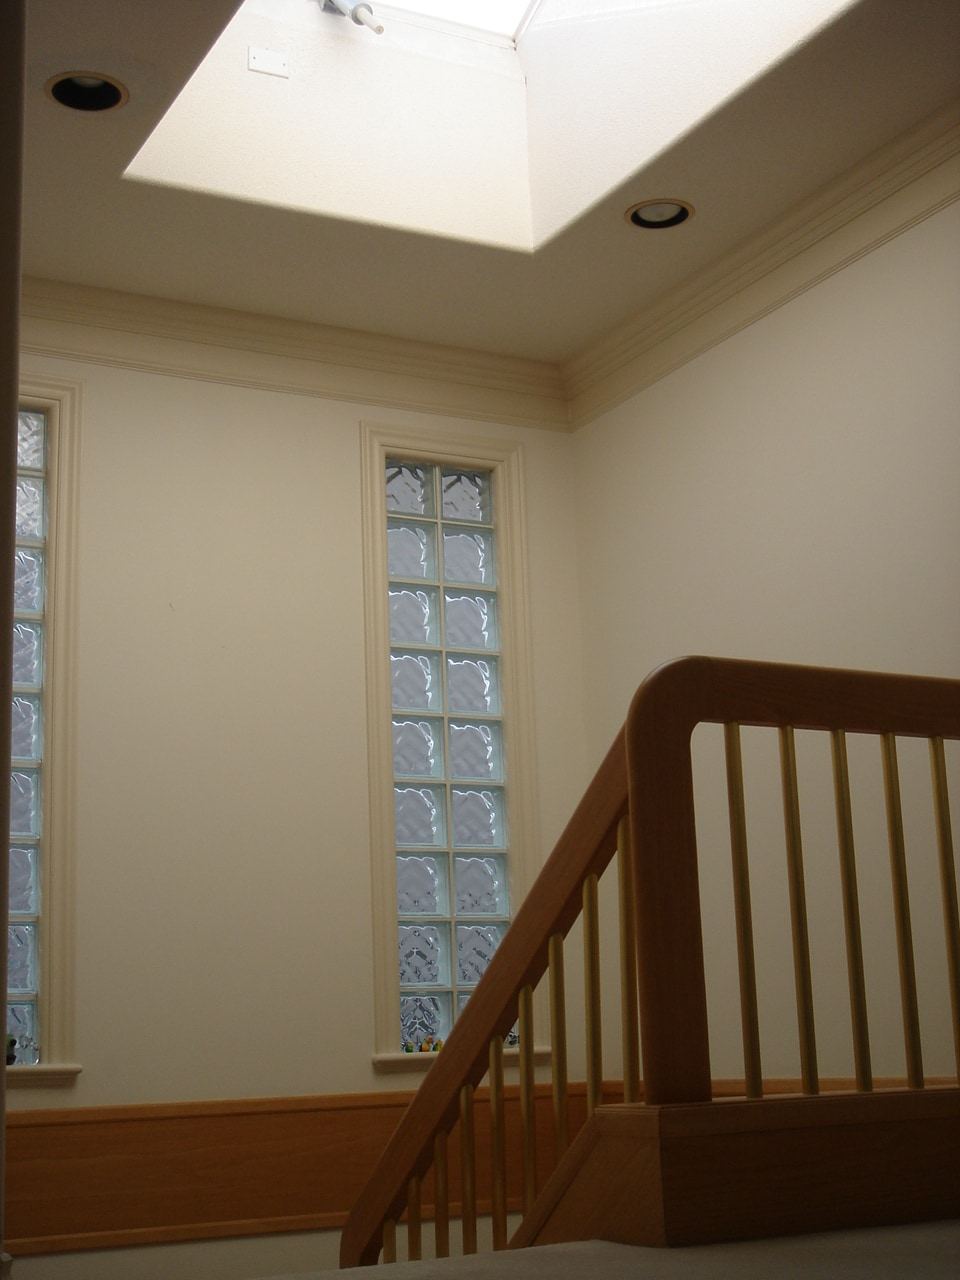 skylight stairway, giving you a happy sensation from light energy